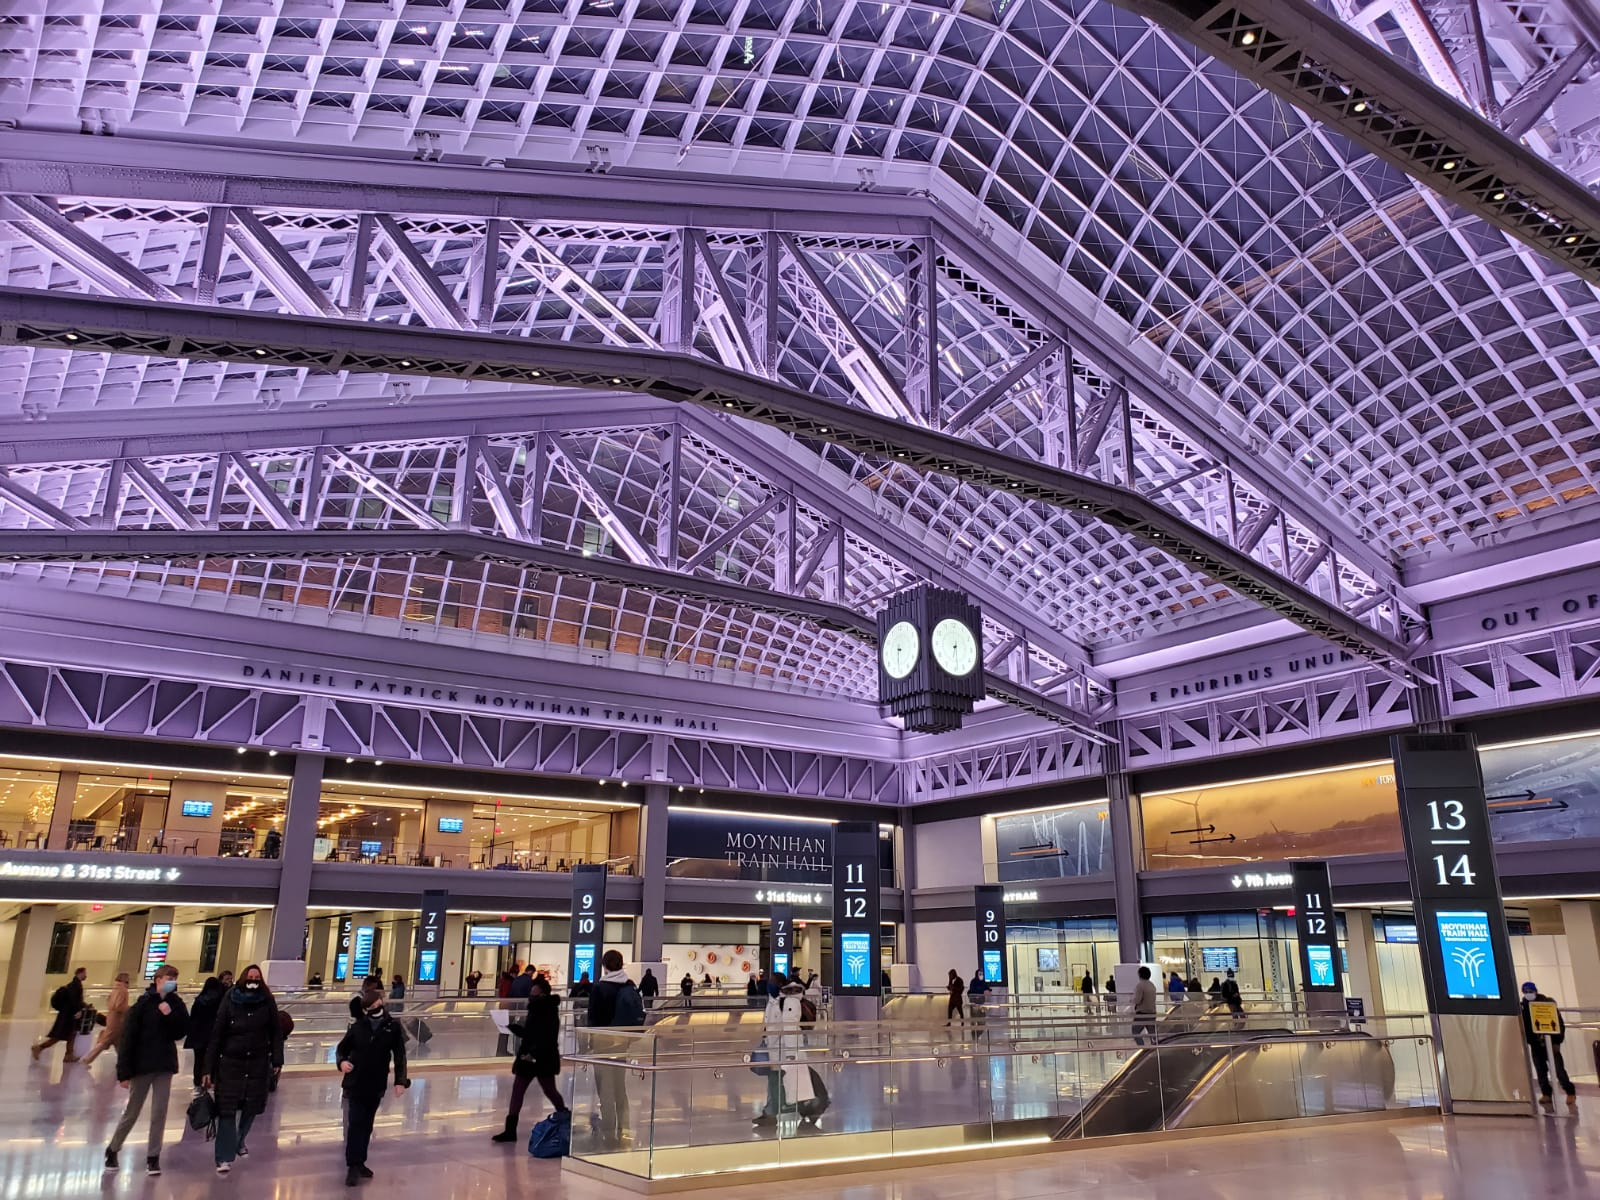 A Bright Start to The New Year with The Moynihan Train Hall